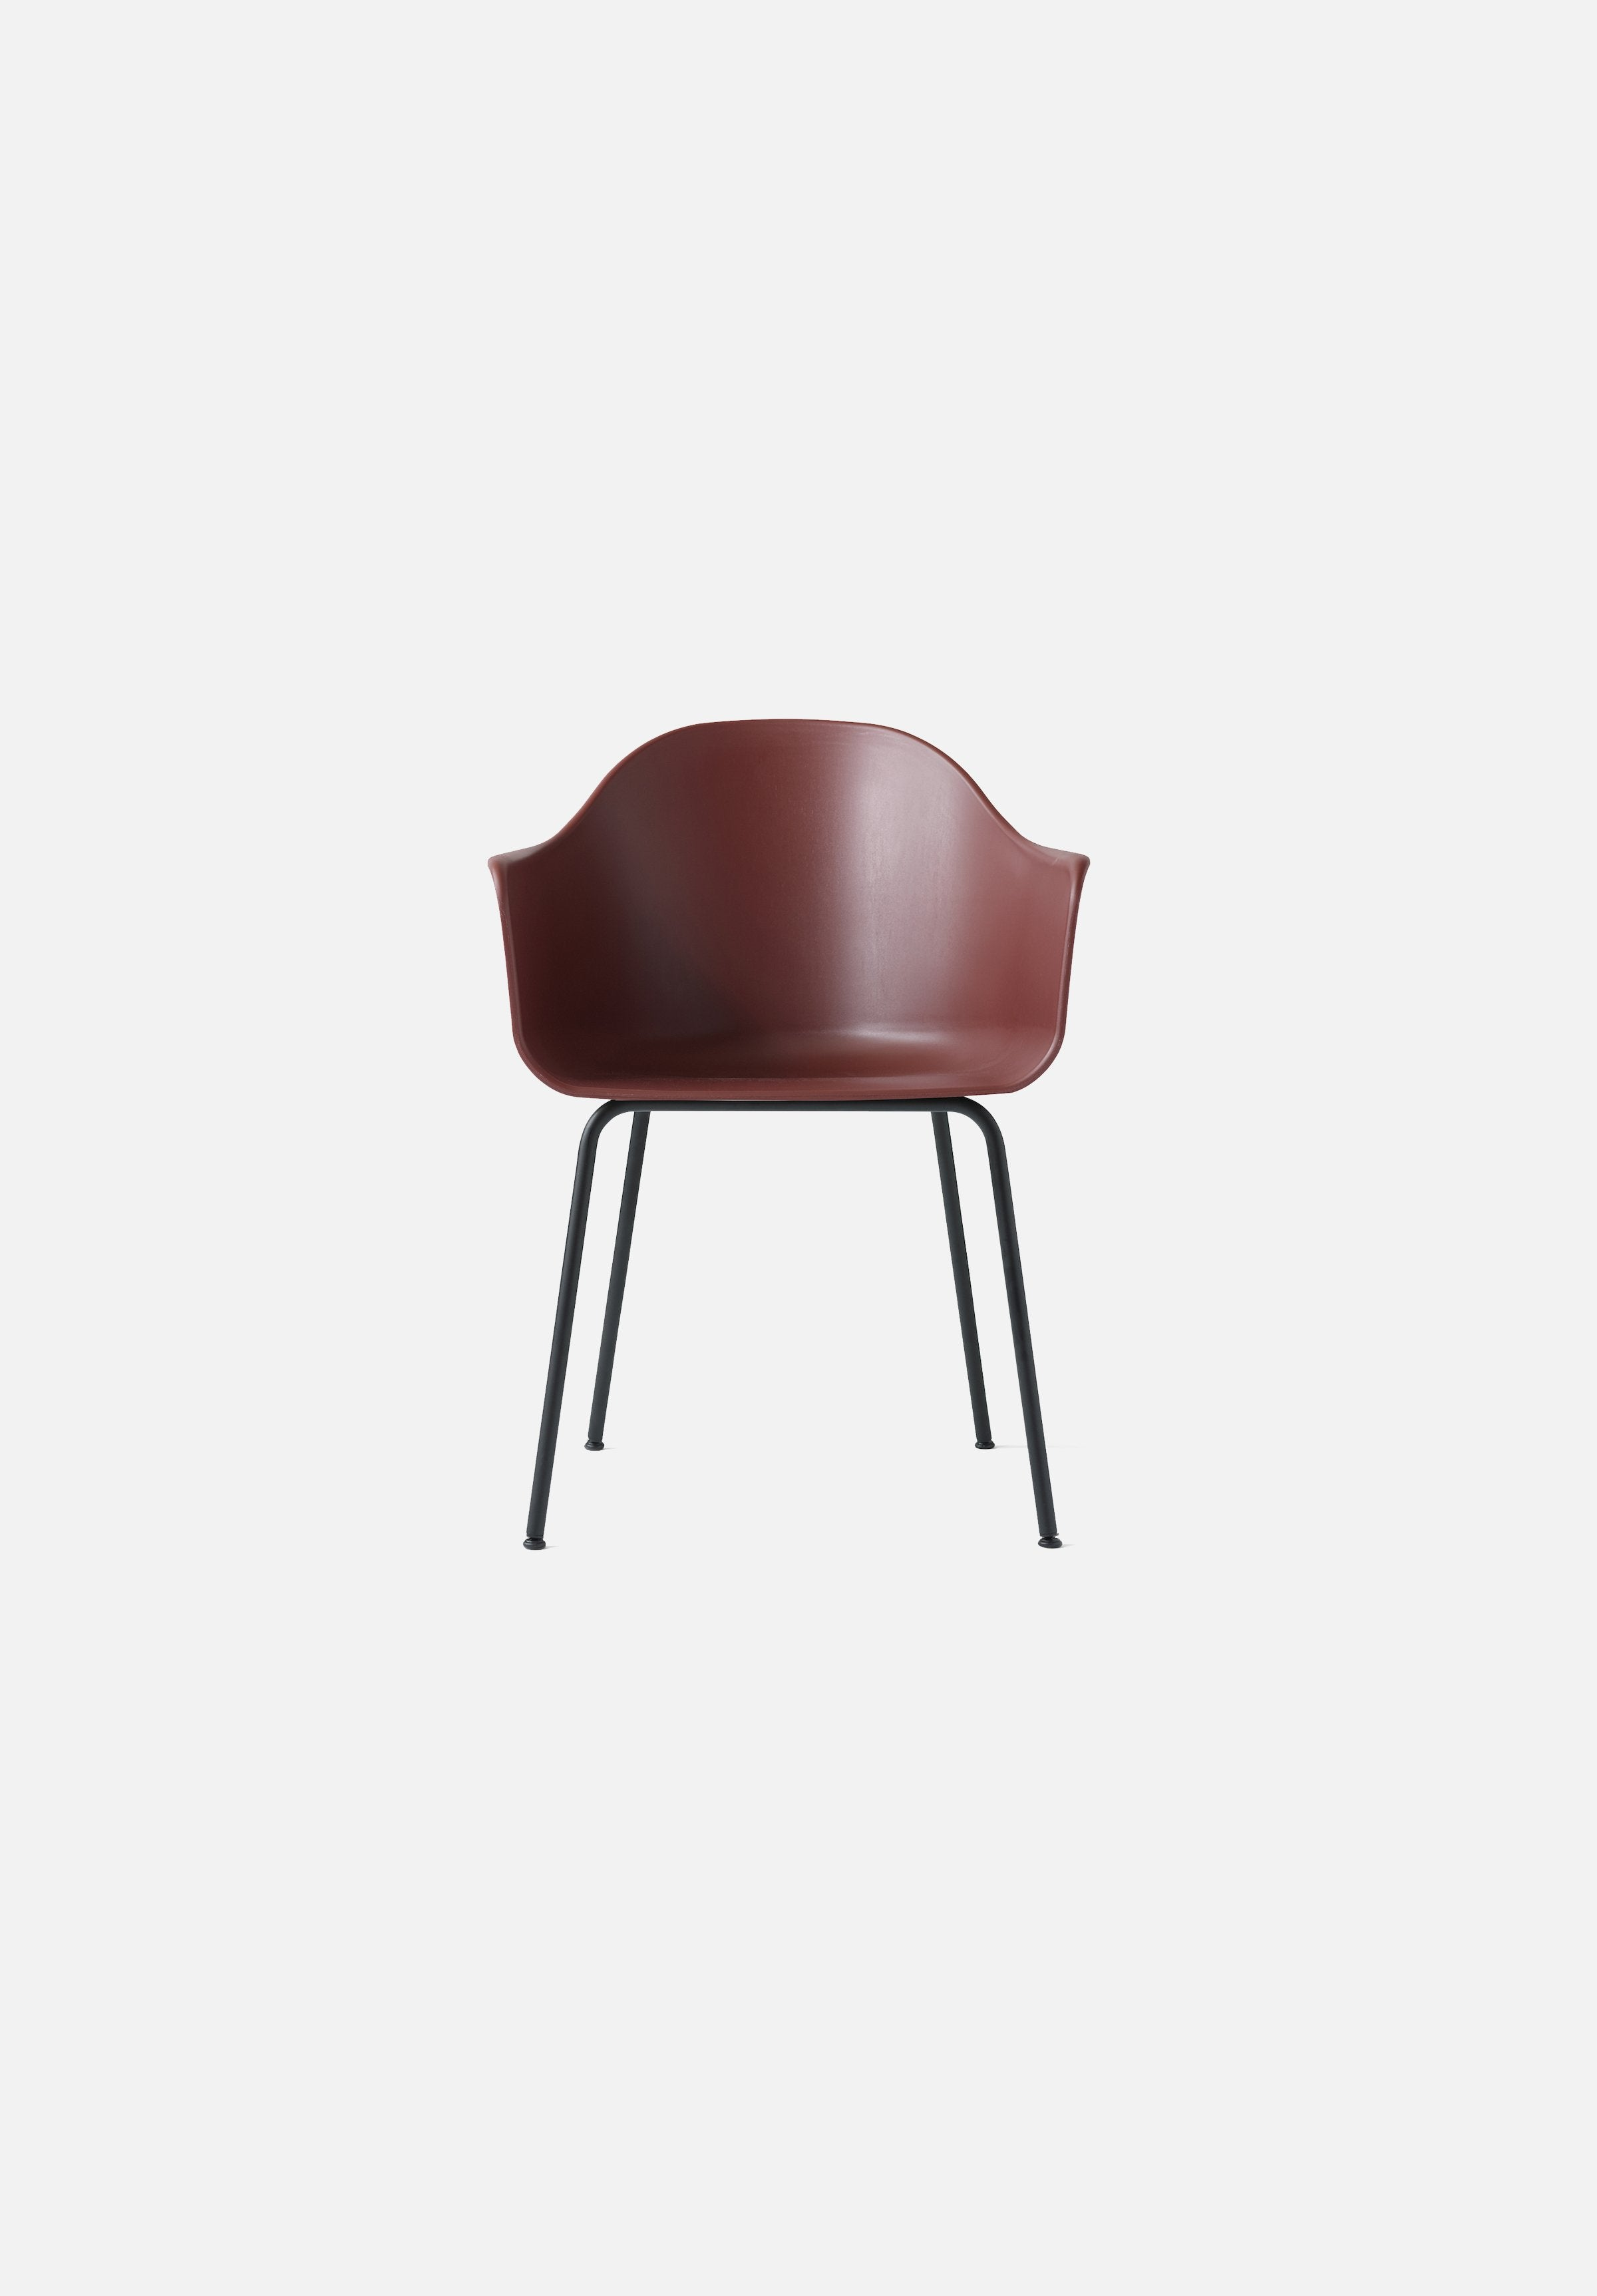 Harbour Chair - Steel Base-Norm Architects-Menu-burned_red-Black Steel-danish-interior-furniture-denmark-Average-design-toronto-canada